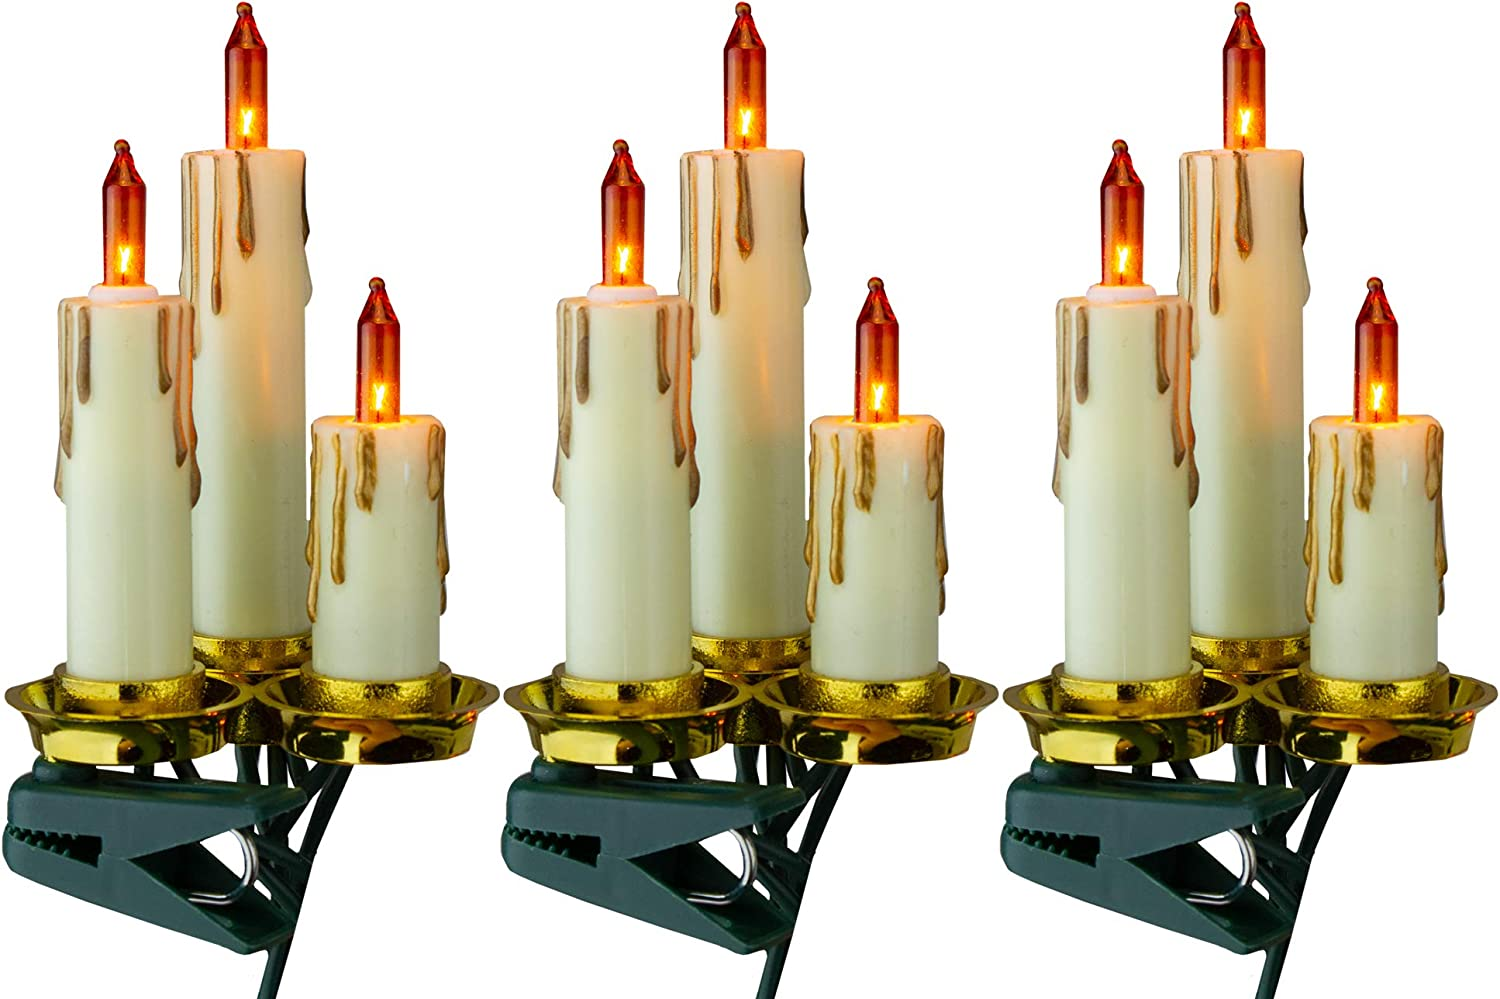 Kurt Adler Max 80% OFF Set of 15 Amber Dripping Chri Ranking TOP6 Clip-On and Candle Gold